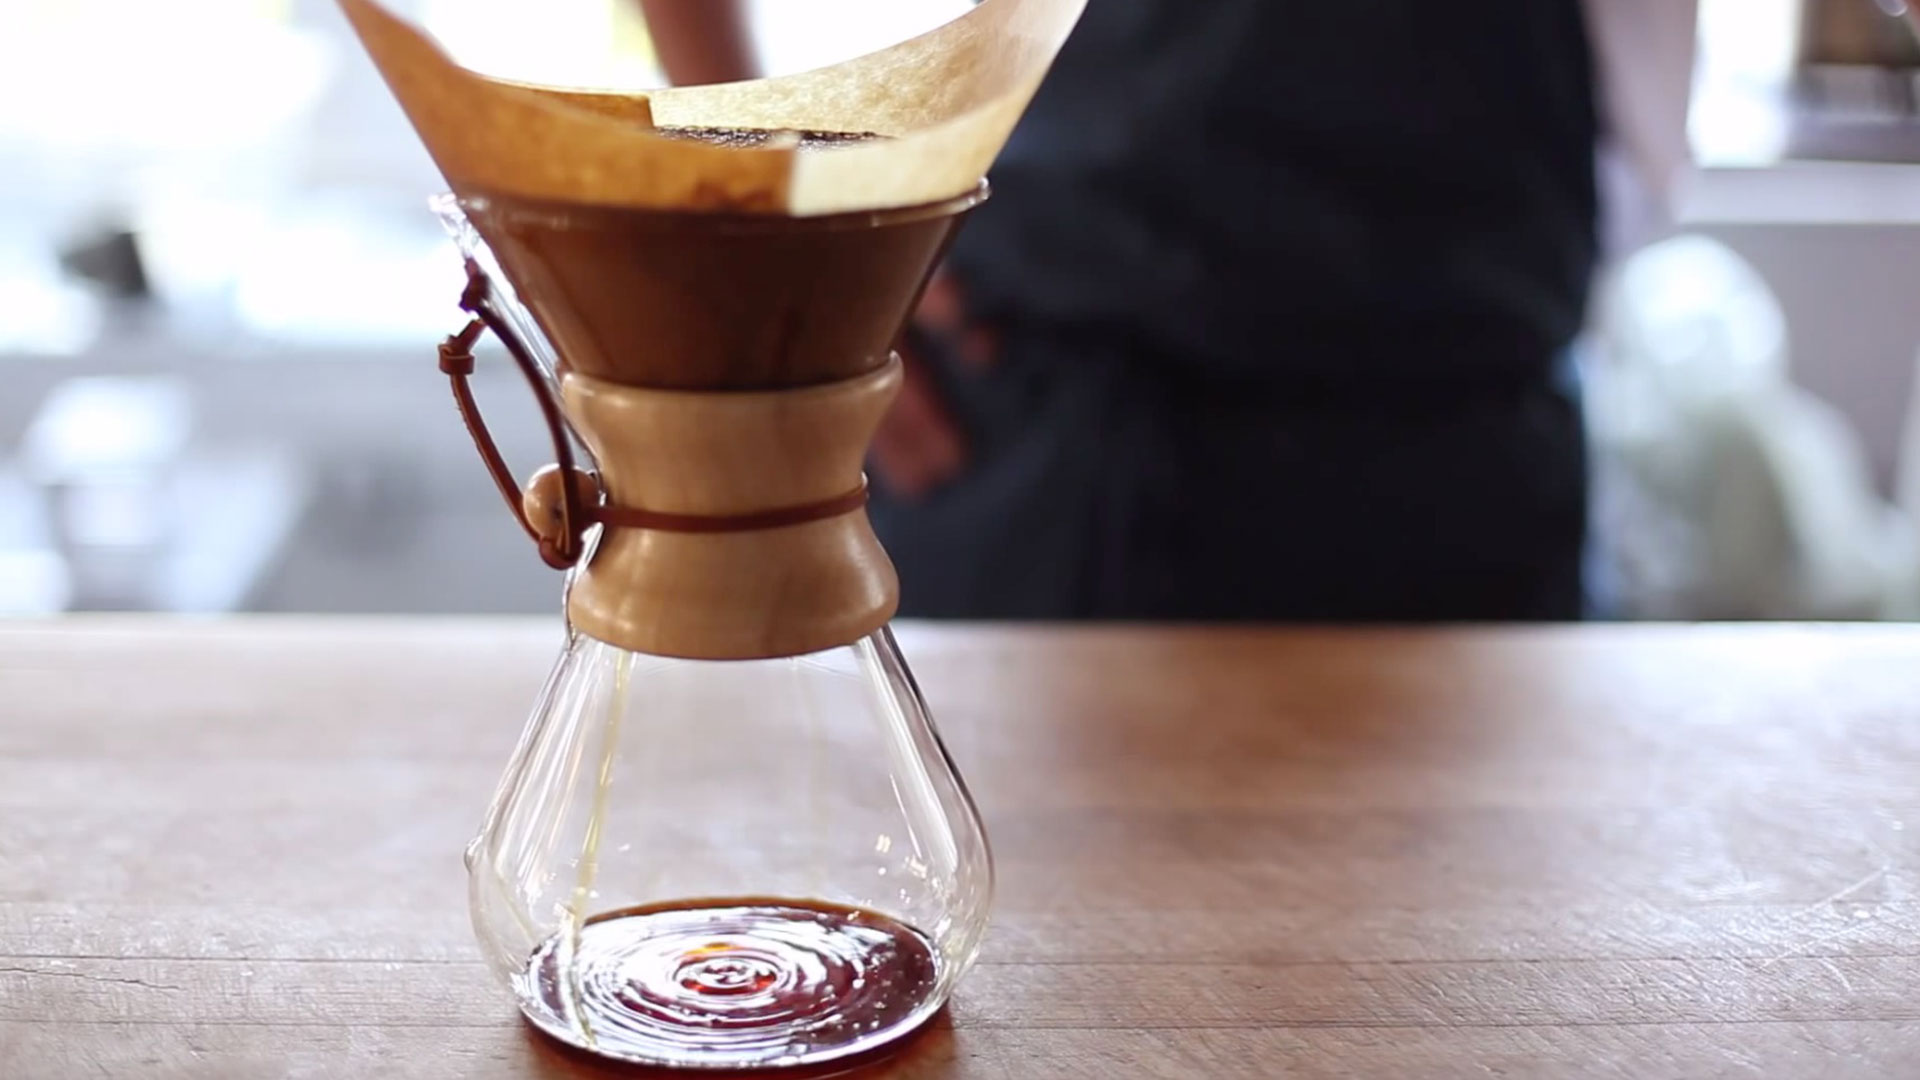 How to Make Quick Cold Brew Coffee